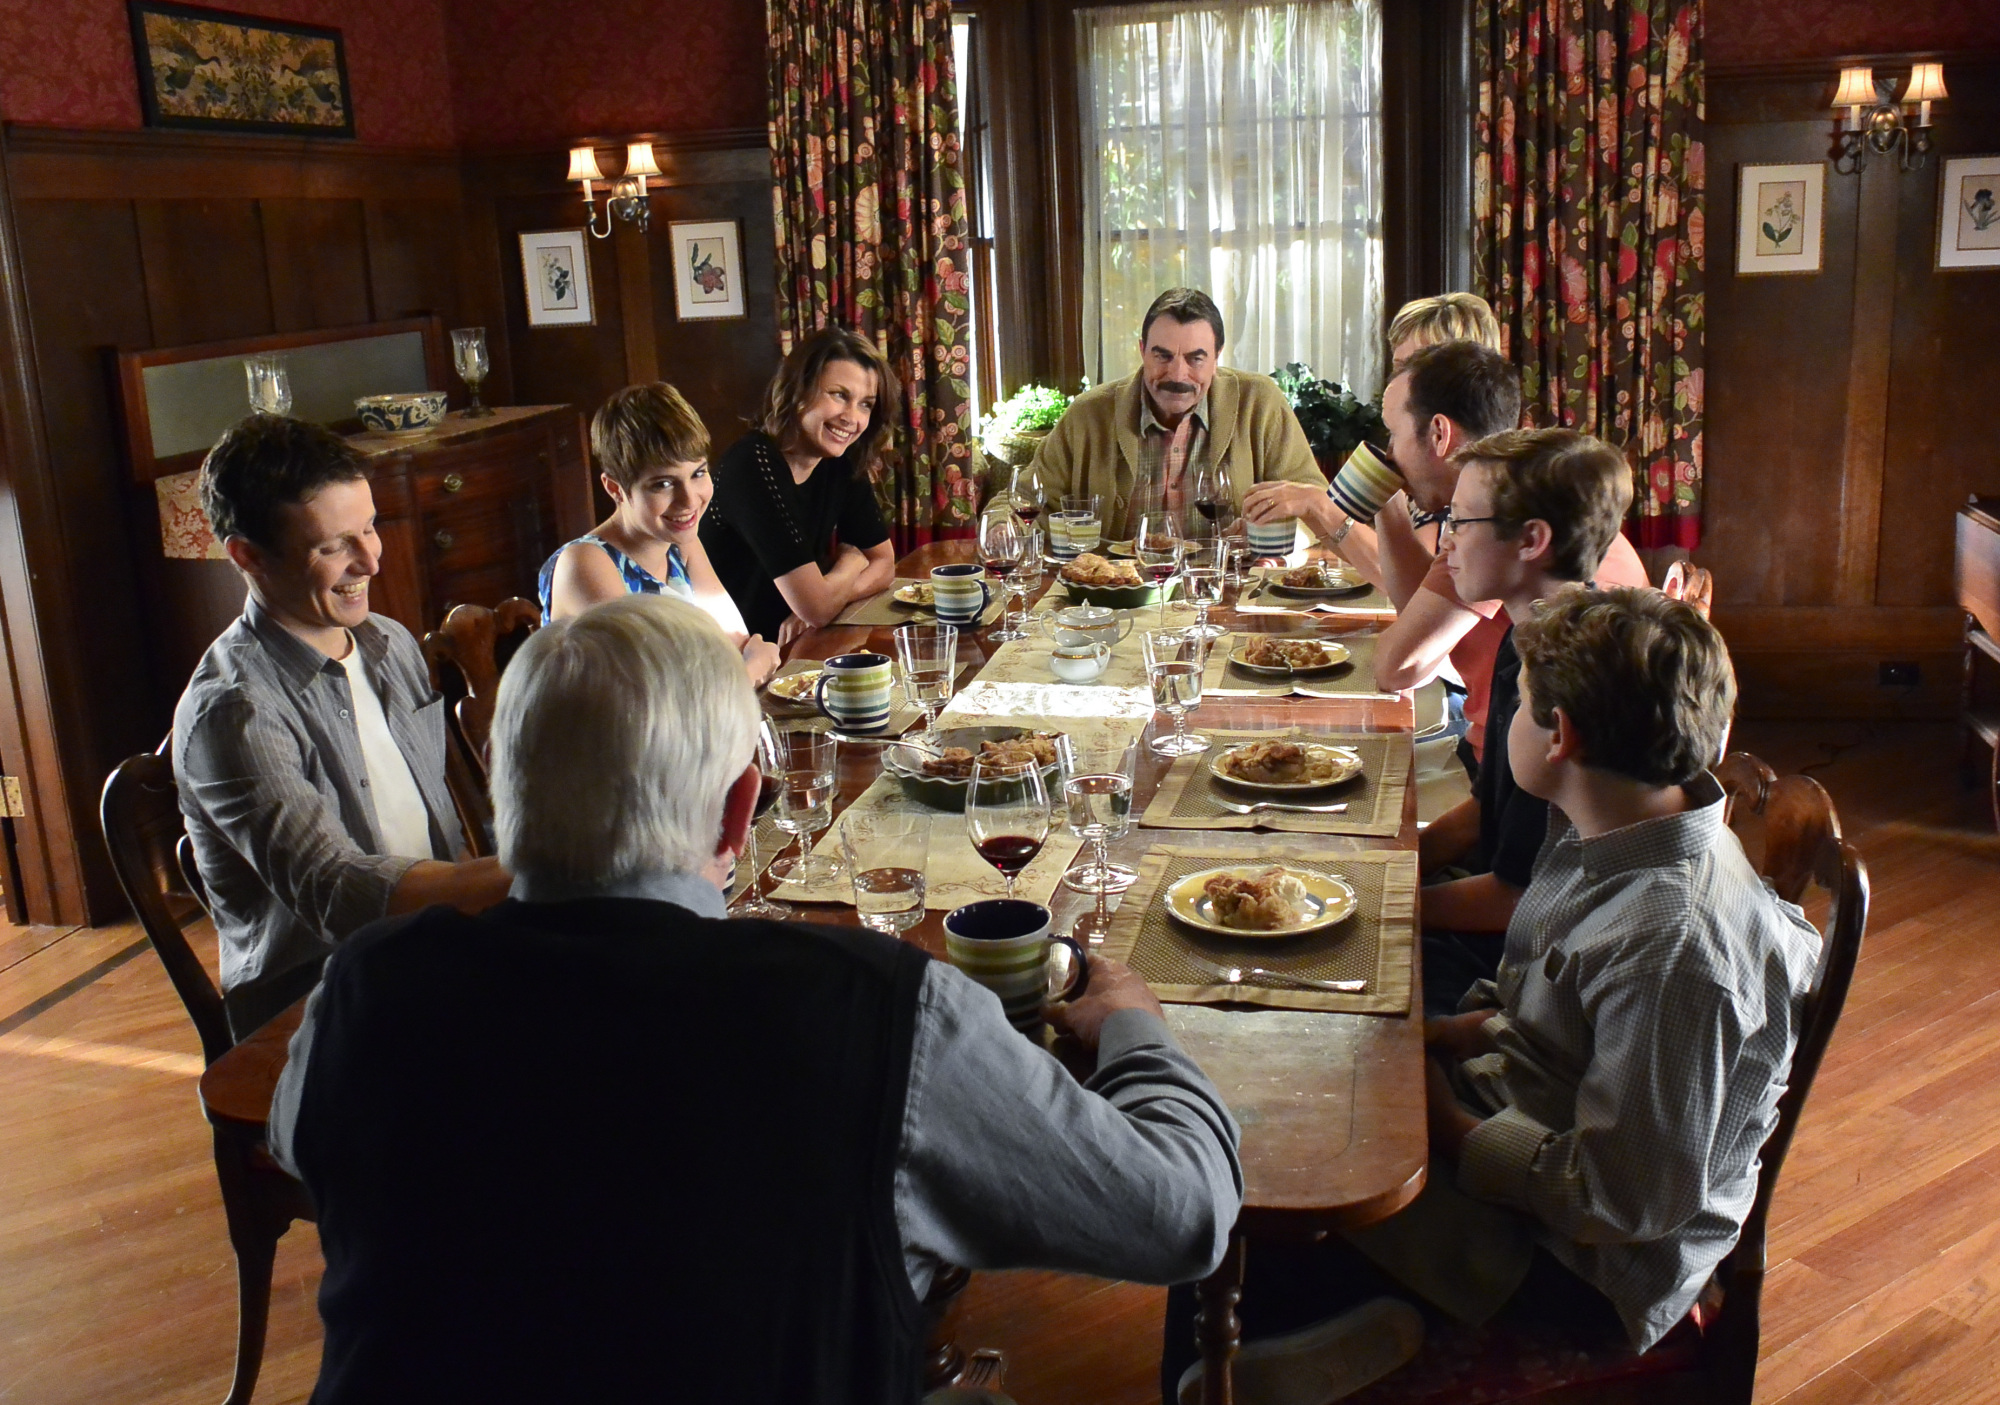 There's nothing more heartwarming than all the smiles around the Reagan family dinners.